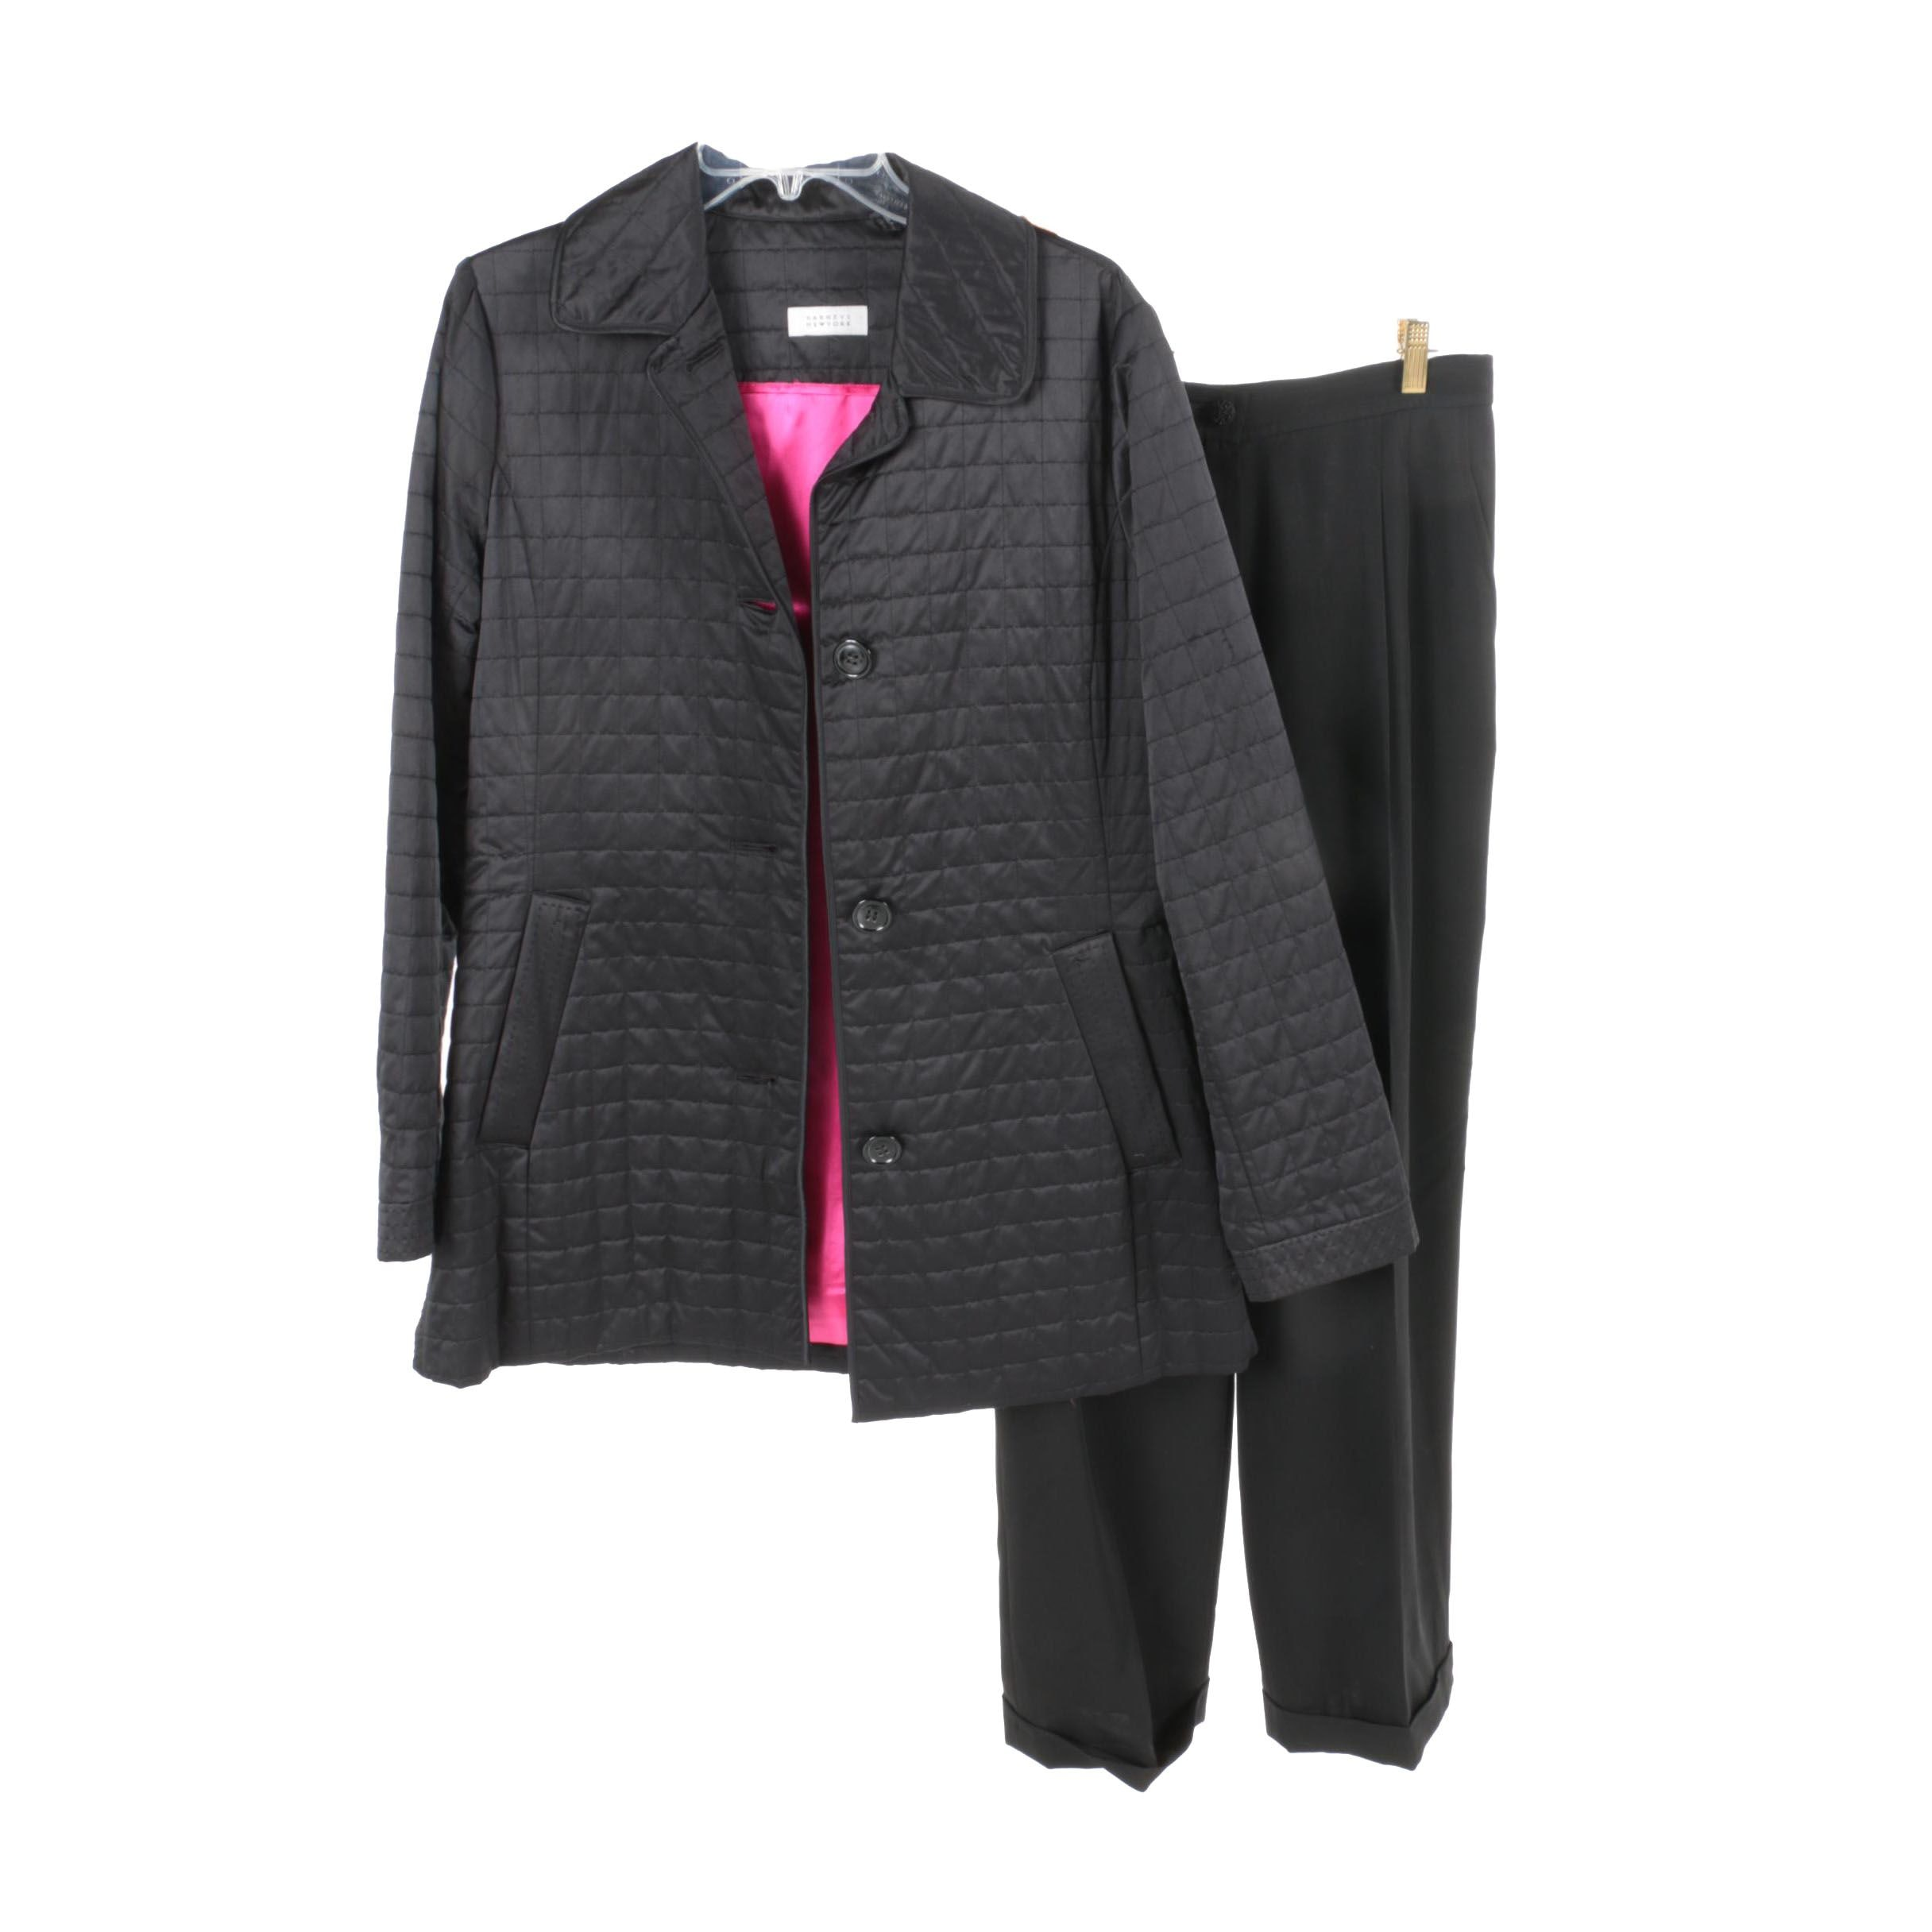 Women's Clothing Including Christian Lacroix and Barney's New York